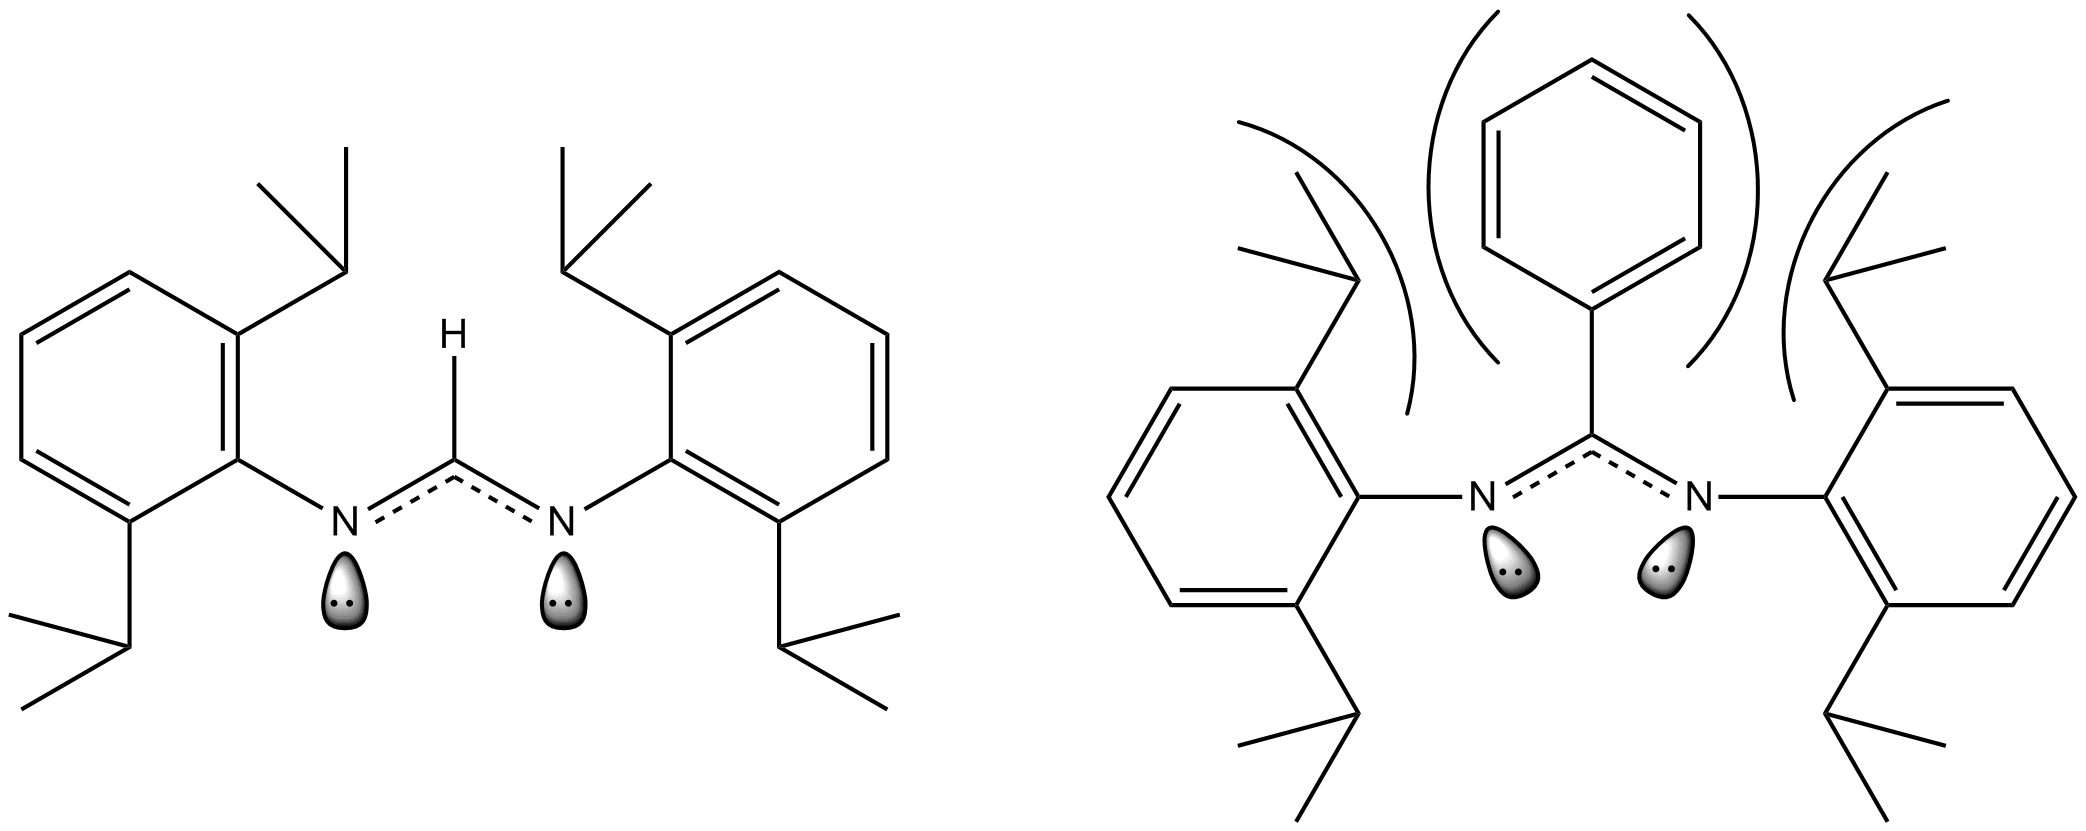 File:Bidentate ligand steric effects png - Wikipedia